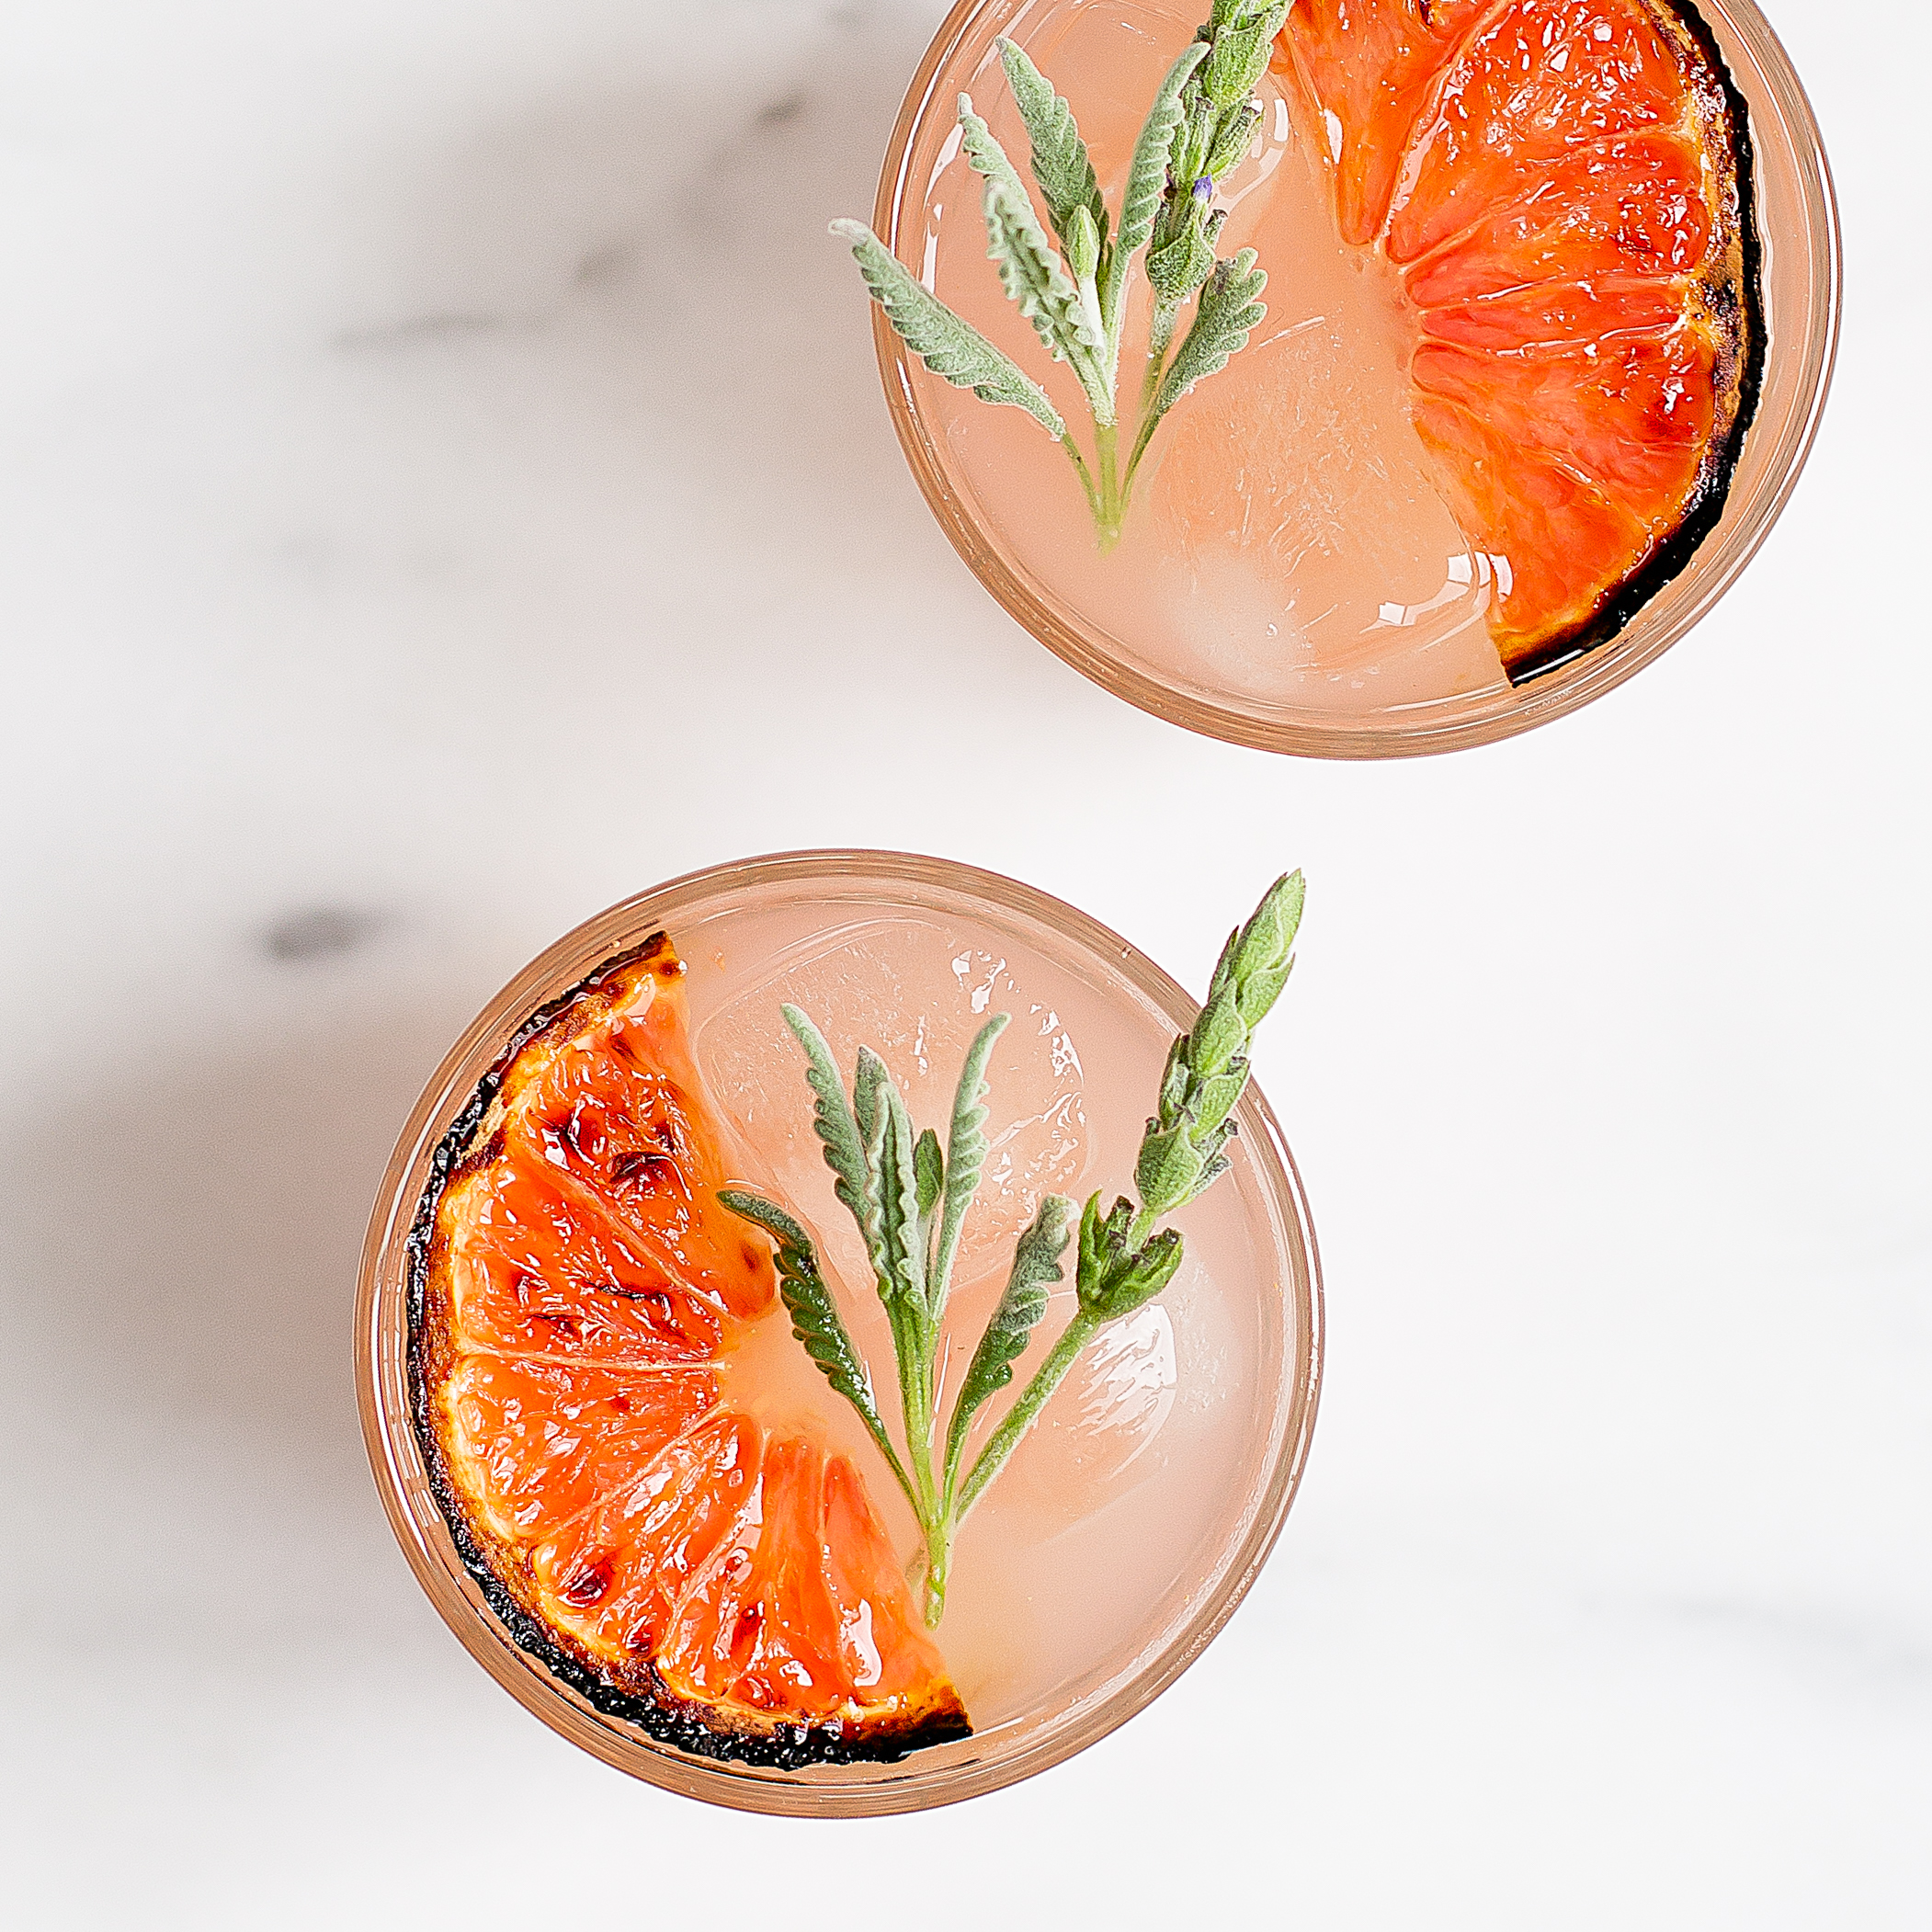 A two ingredient recipe for the prettiest, easiest spring cocktail ever. Lavender infused vodka and brûléed grapefruit come together in a drink that guests won't forget.